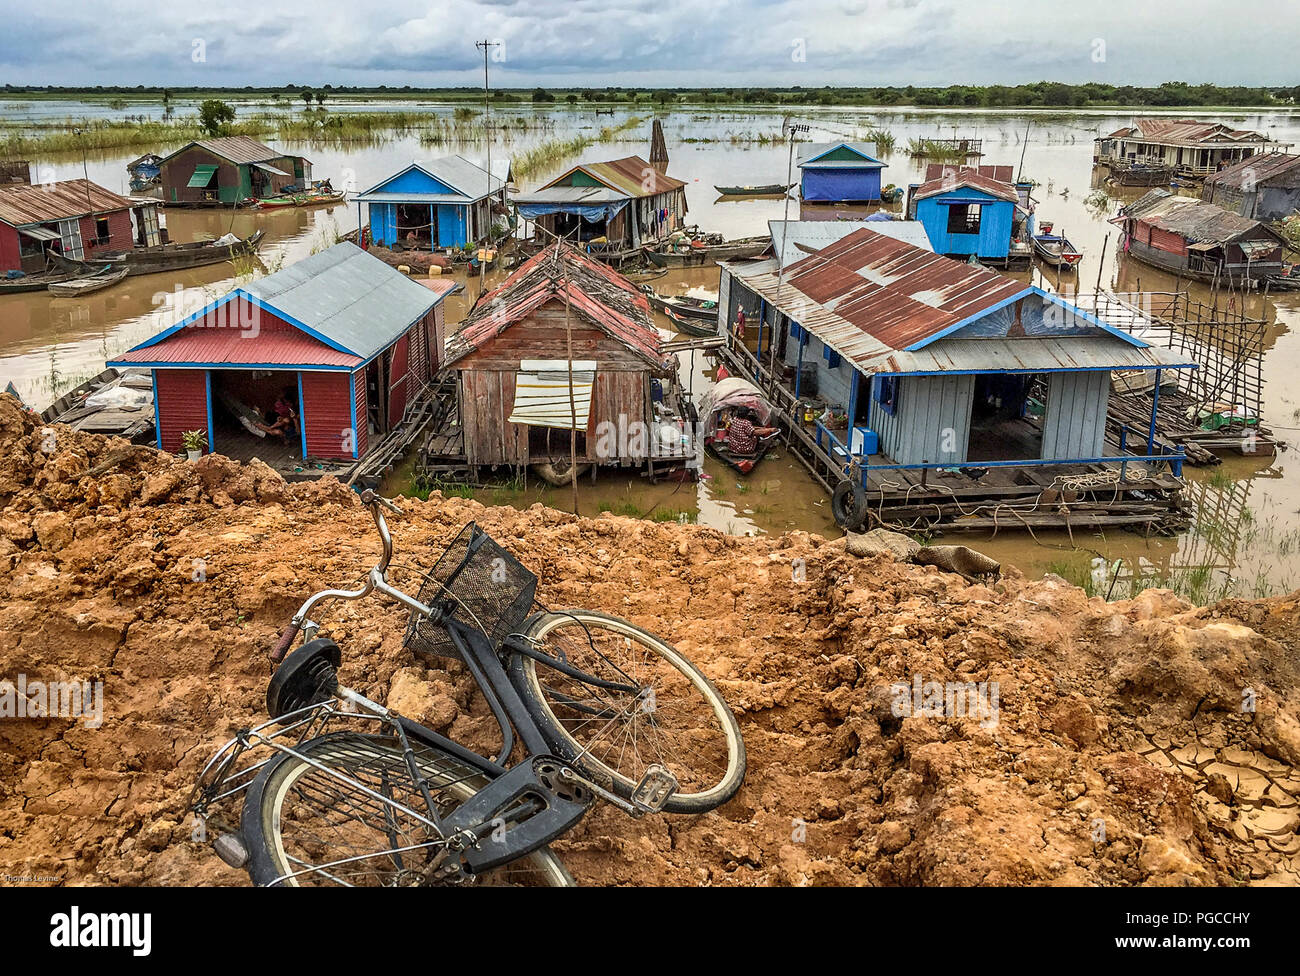 These are house boats in a large lake by Siem Reap, Cambodia. The group of boats are on Phnom Krom Lake and is a village called Chong Kneas. - Stock Image